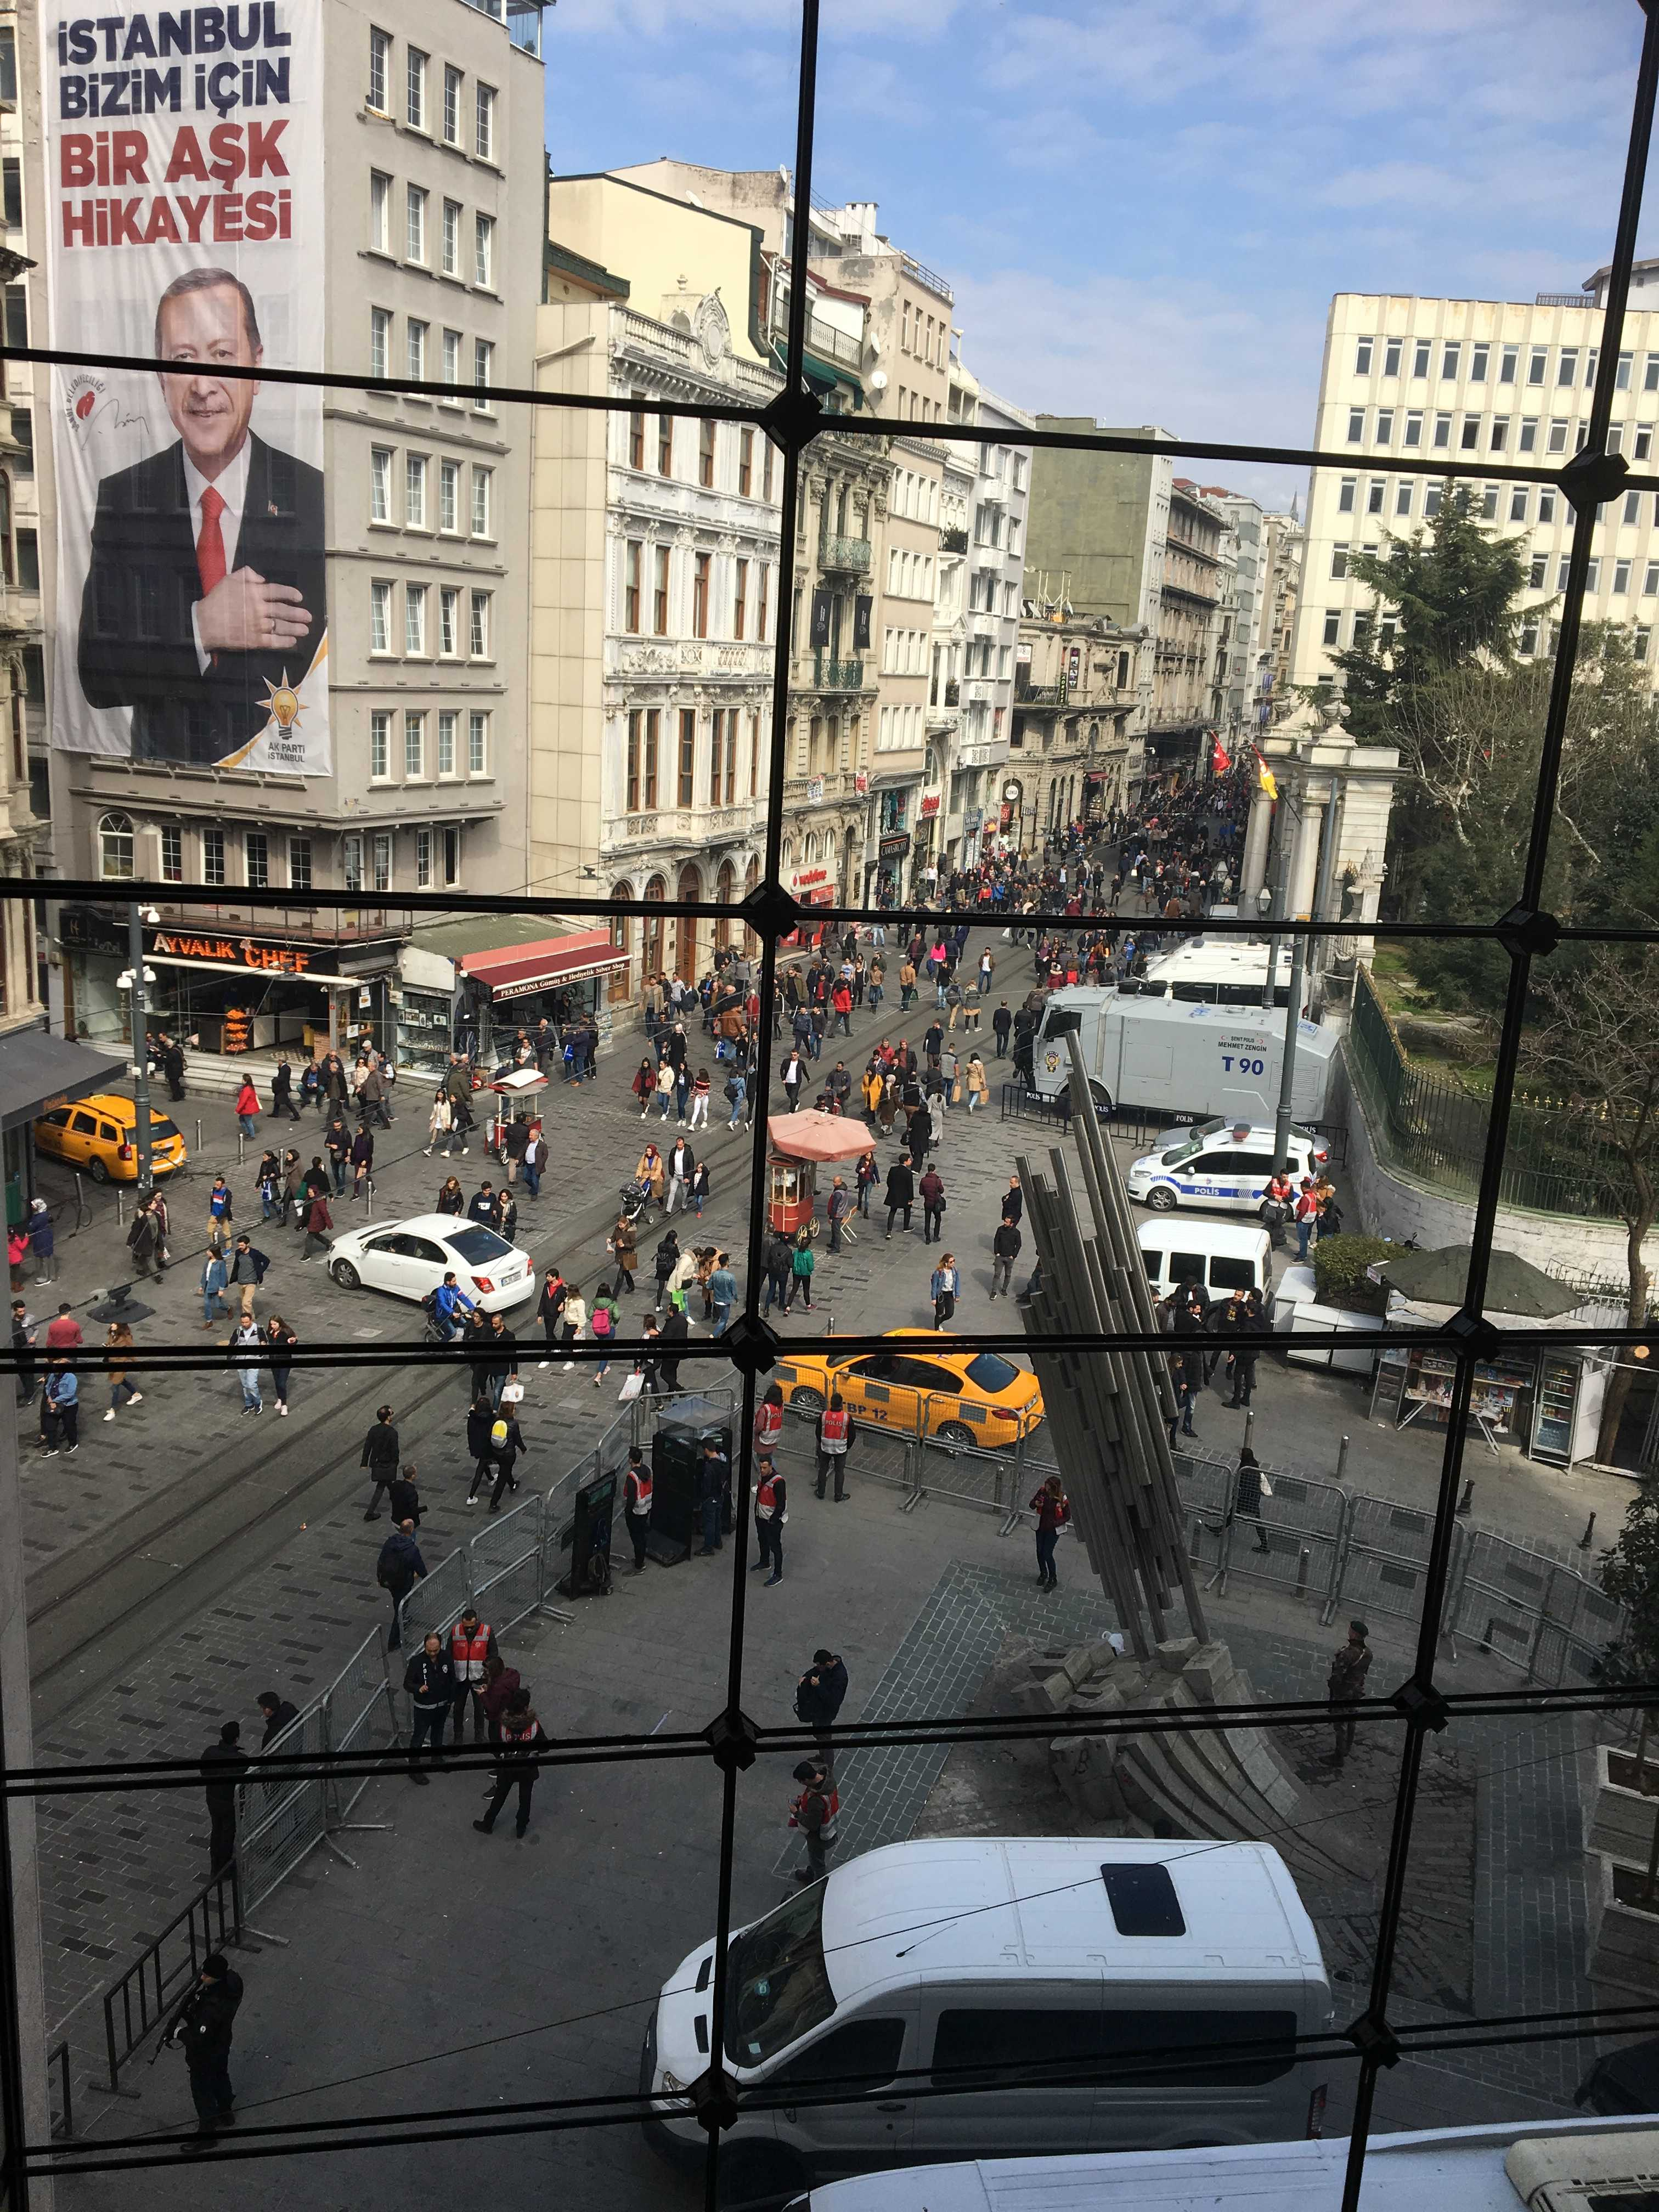 View from the conference venue, fenches and police at the place where the demonstrations took place. On the wall election posters for Erdogan's AK party. photo Annemarie de Wildt